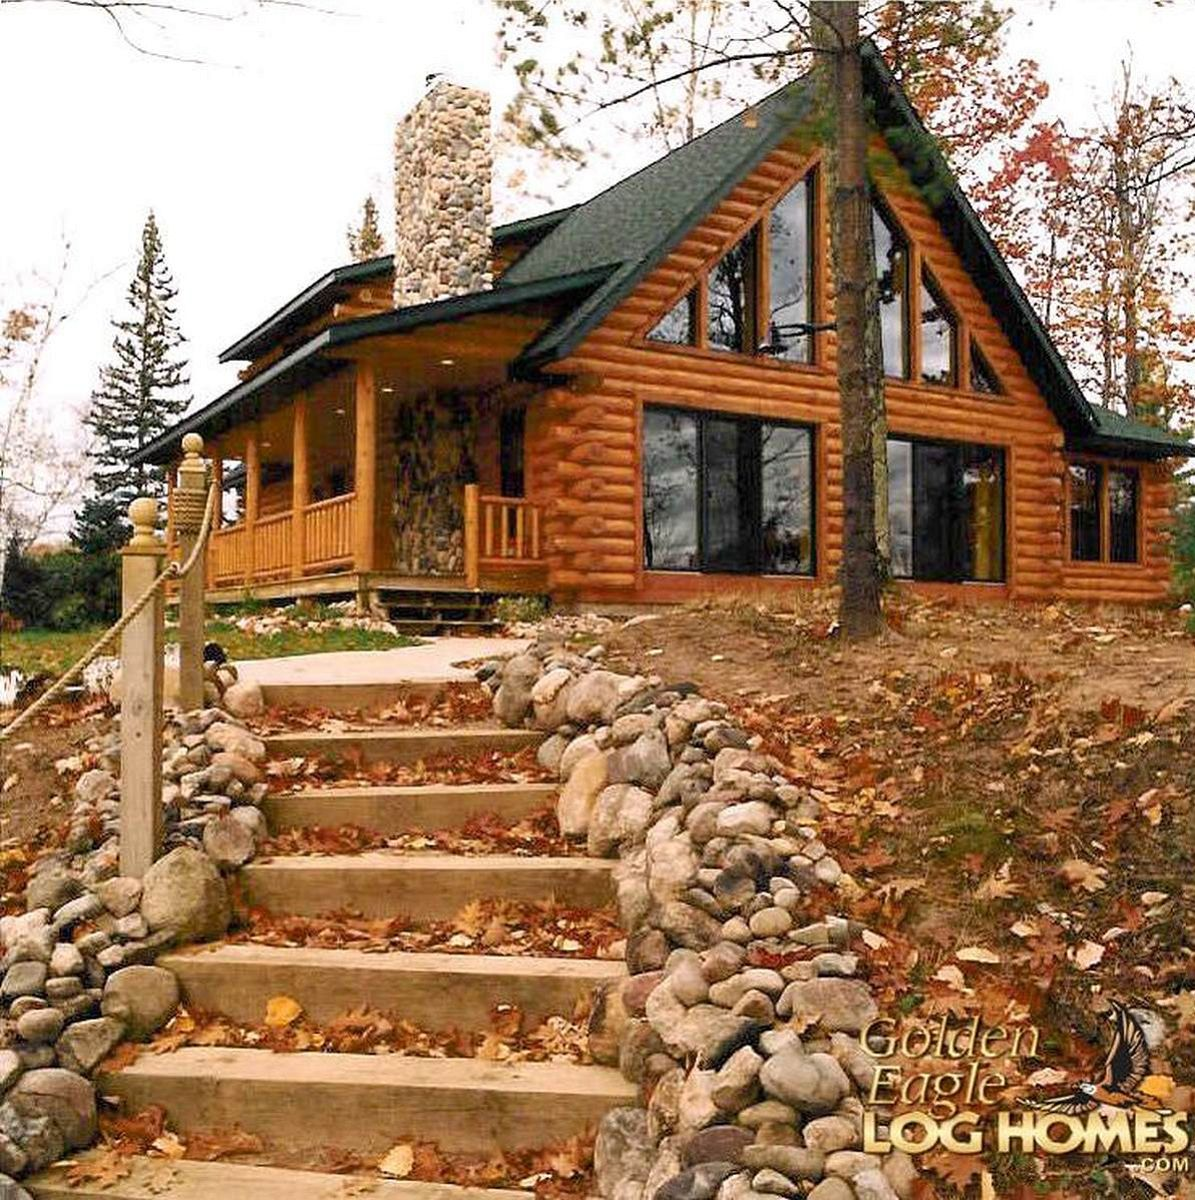 Log home by golden eagle log homes golden eagle log logs for House log